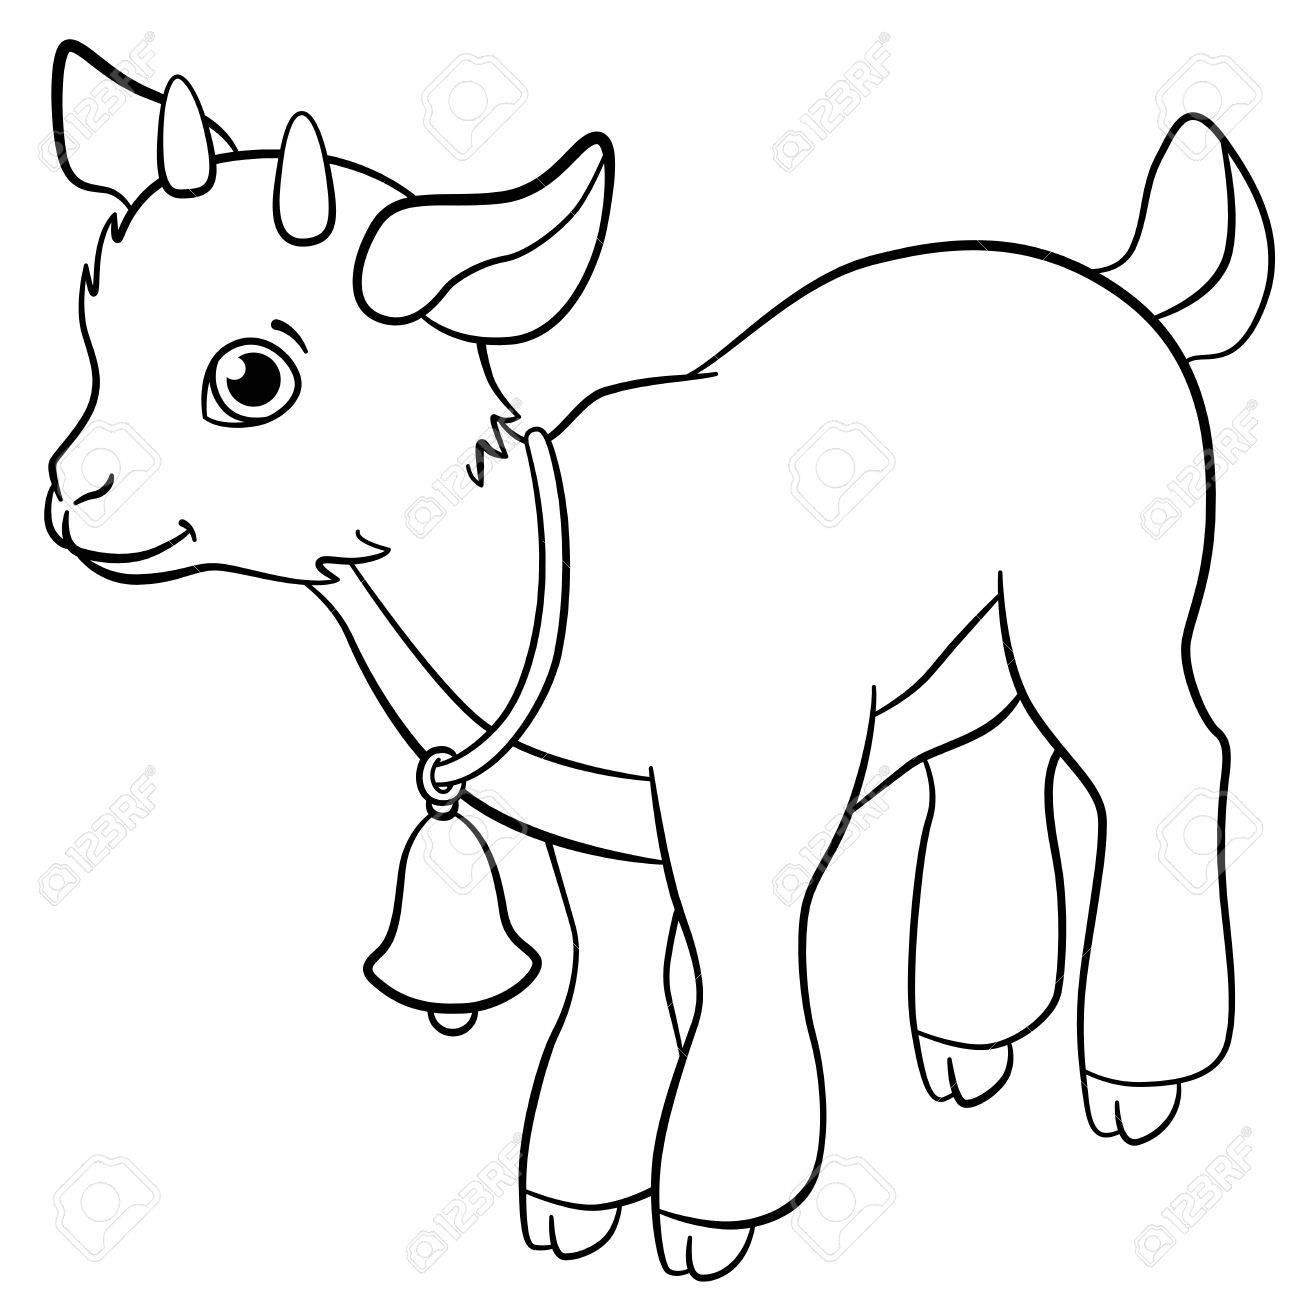 coloring pages farm animals little cute goatling smiles royalty